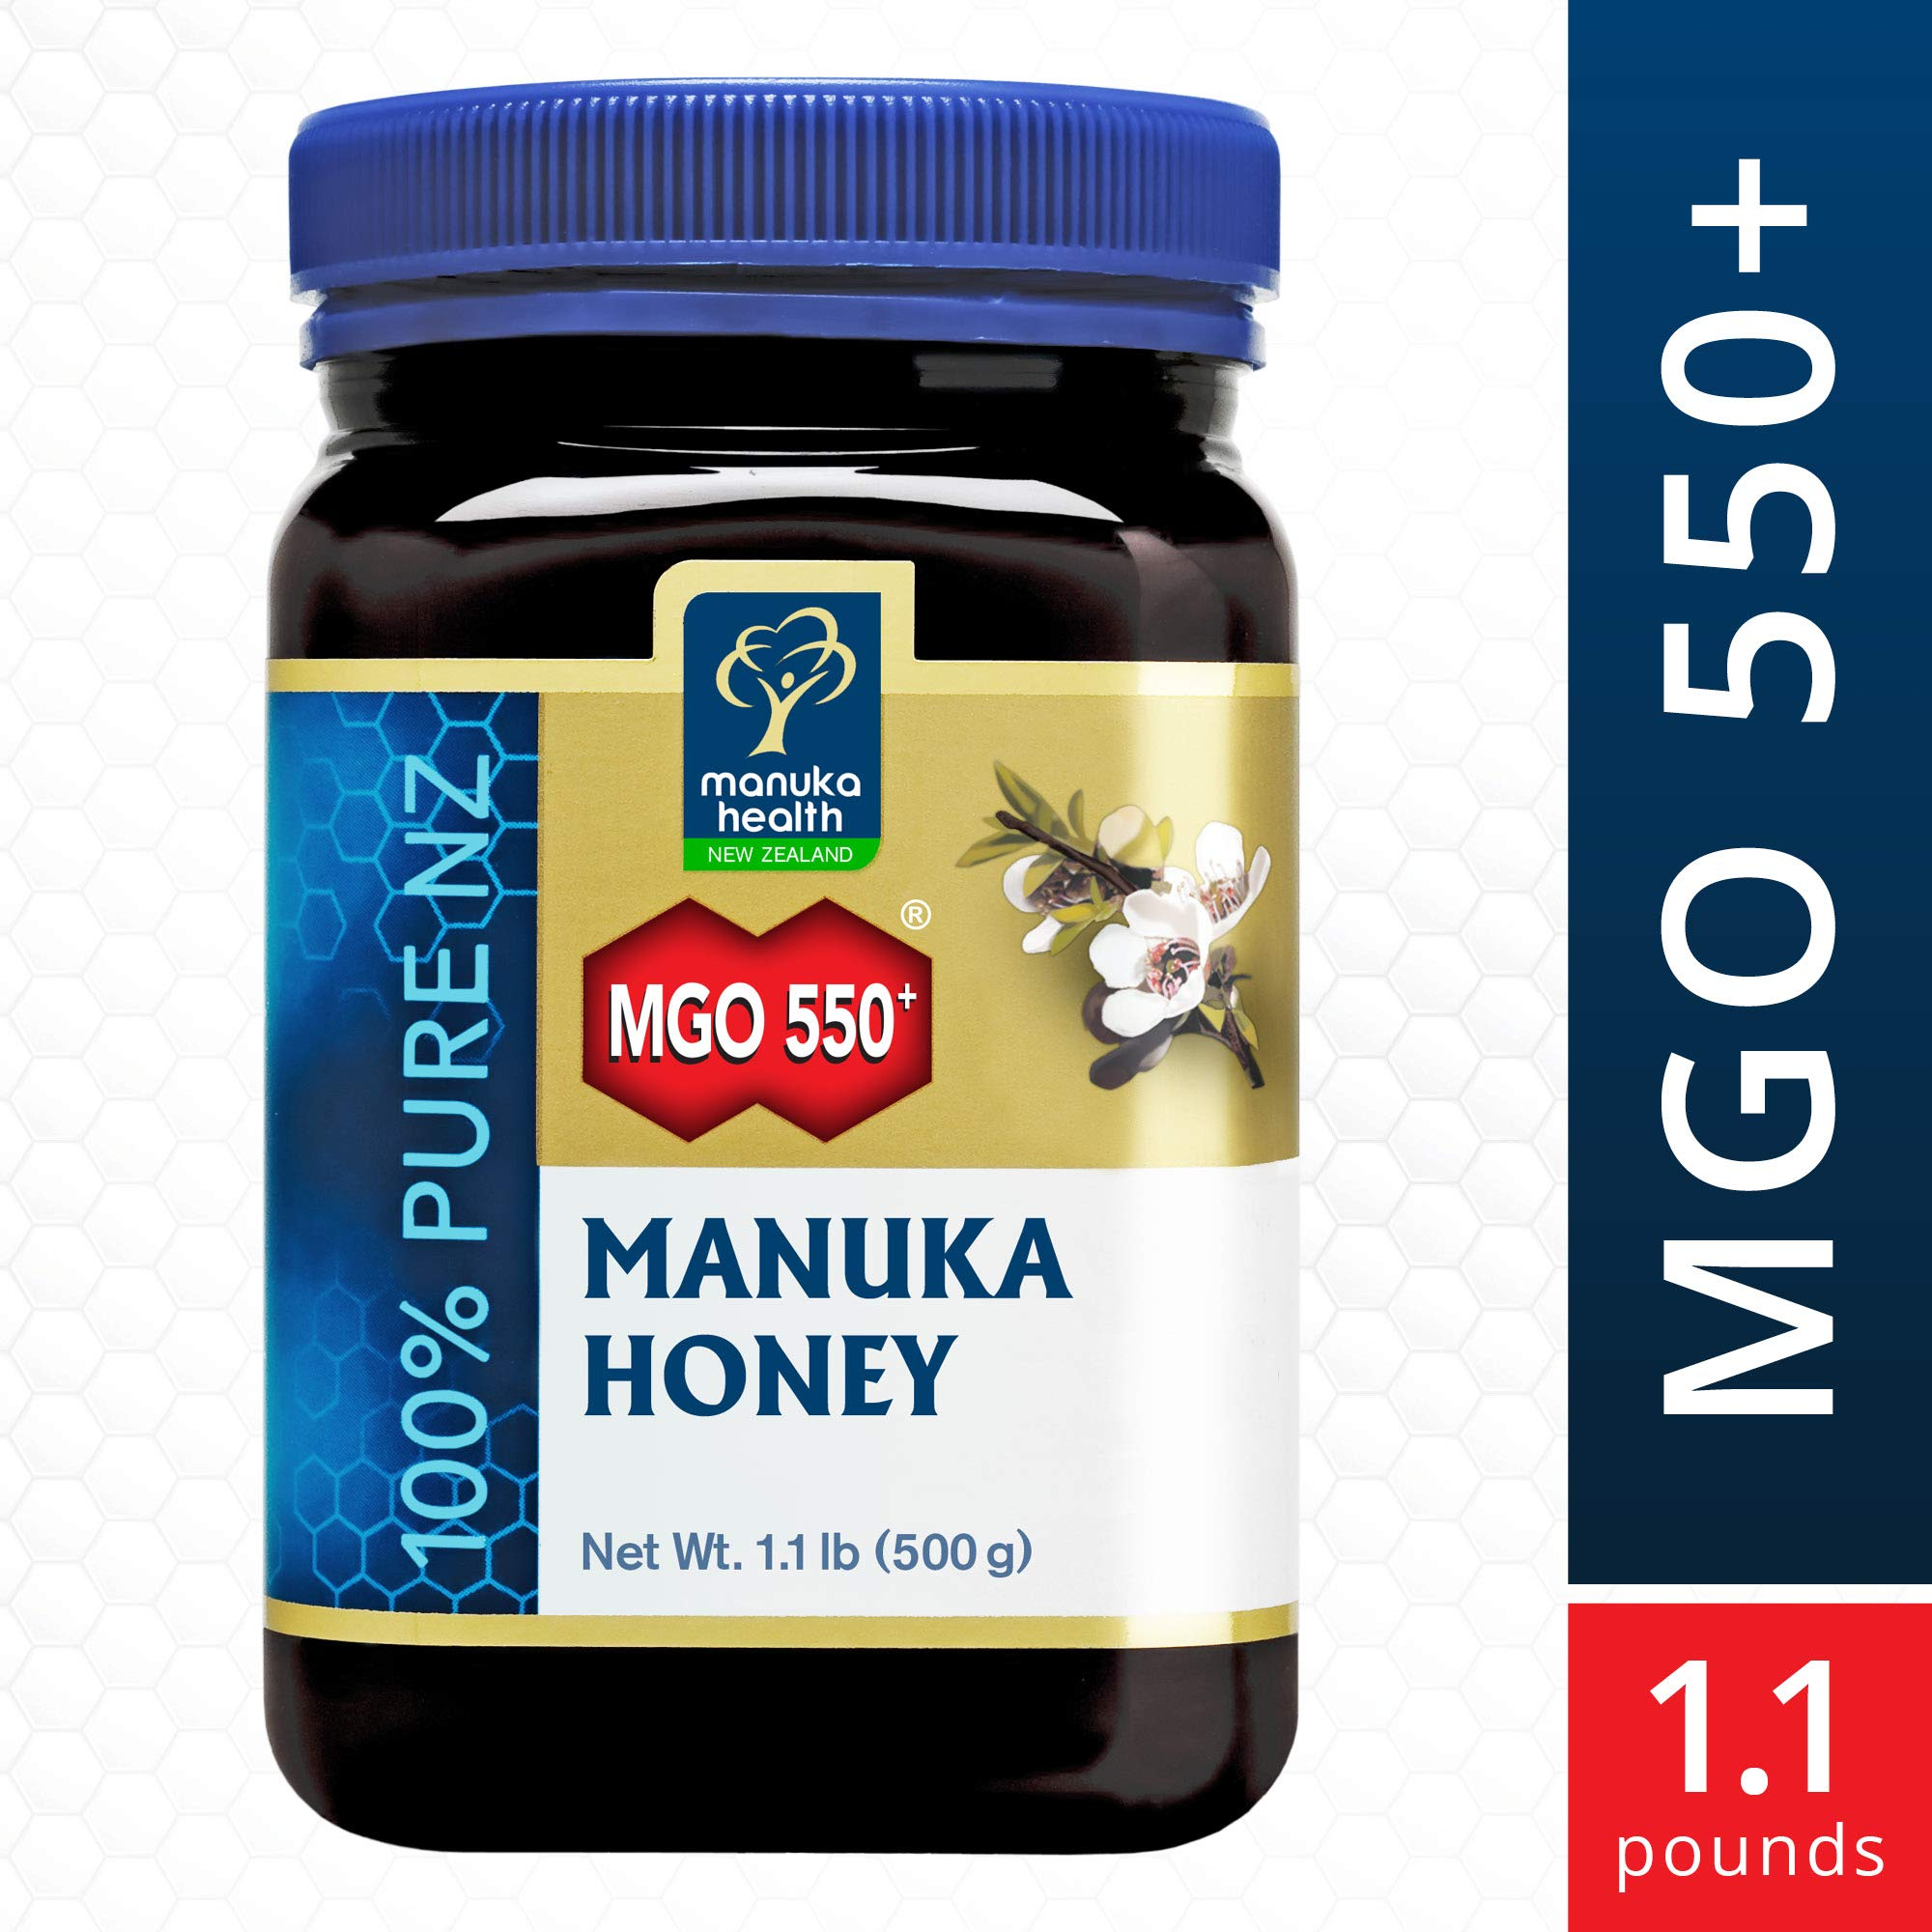 Manuka Honey - MGO 550+ Manuka Health, 100% Pure New Zealand Honey, 1.1 lbs by Manuka Health (Image #1)